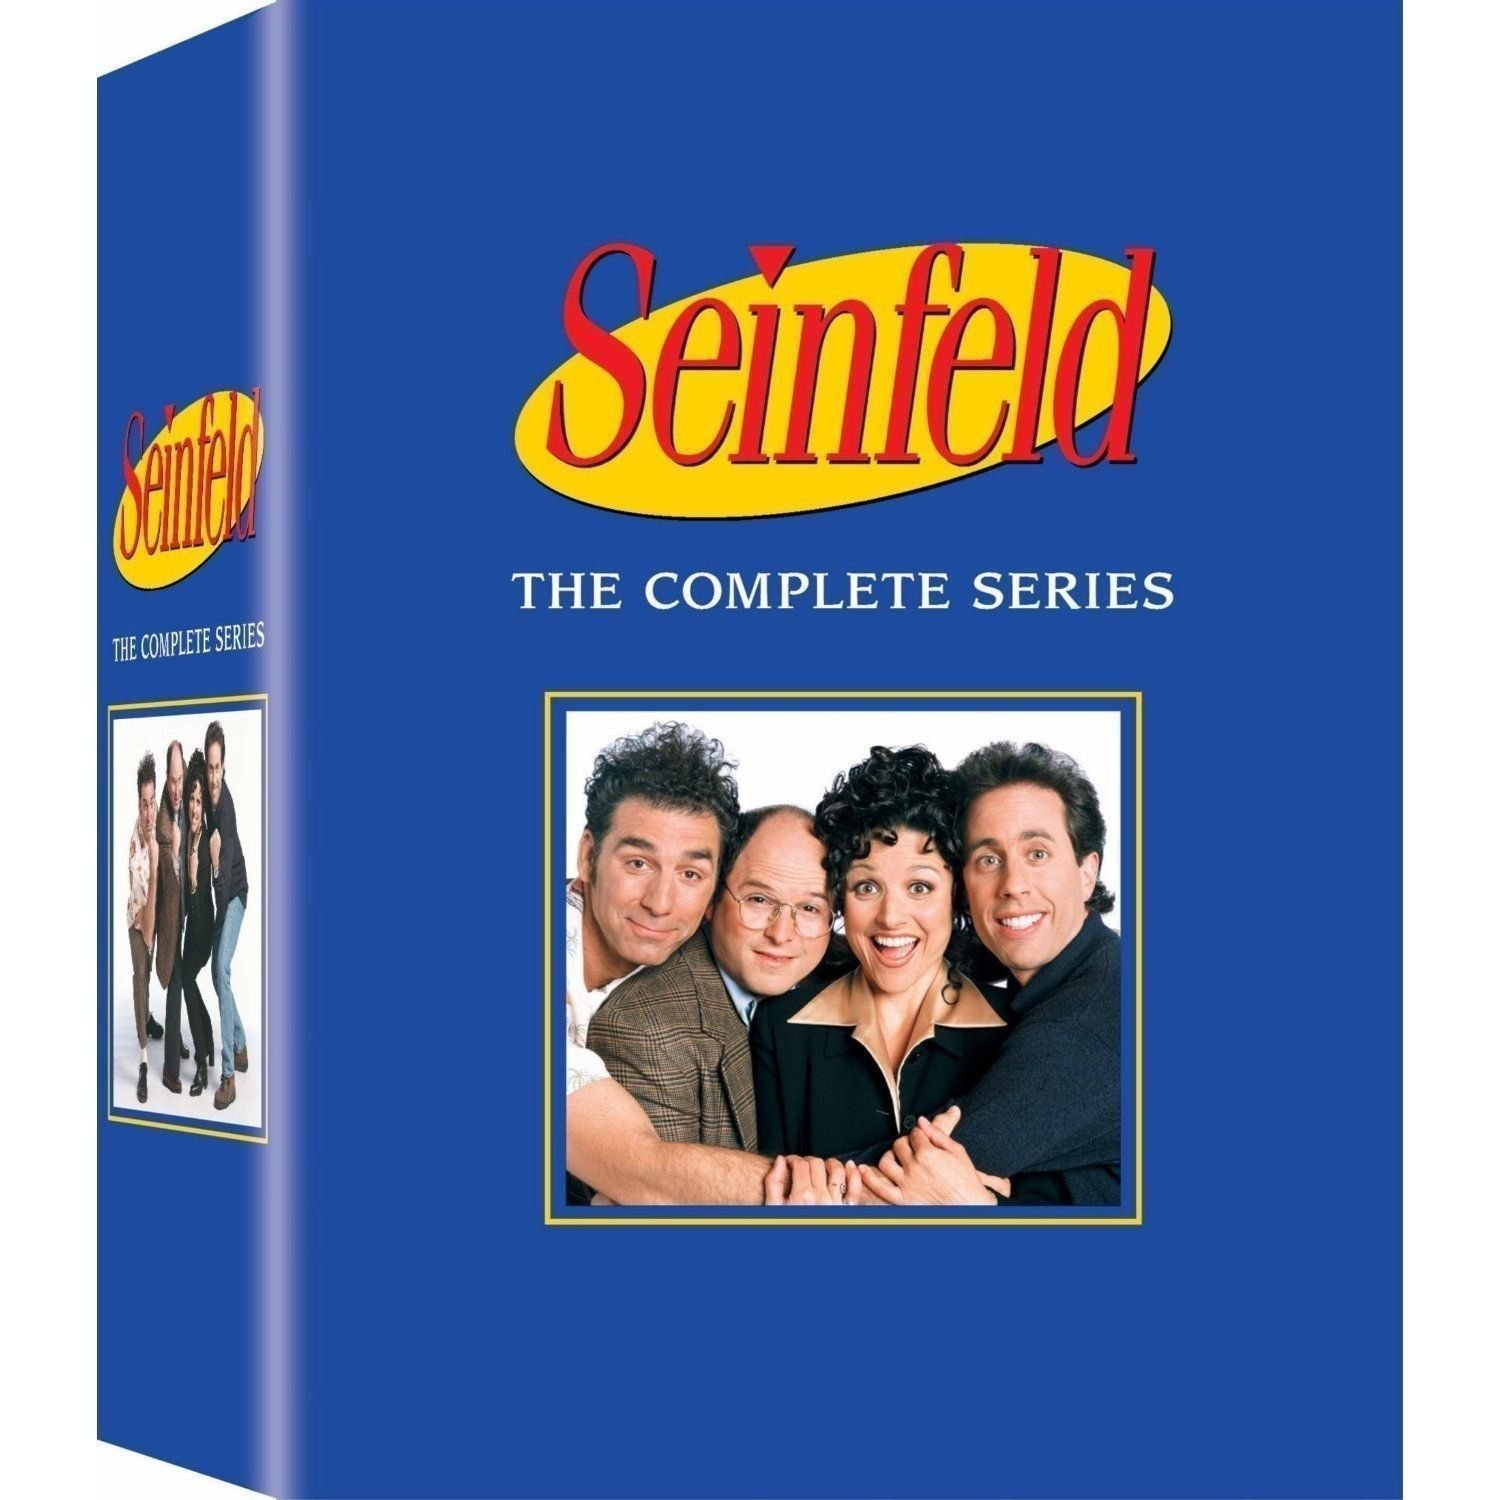 Seinfeld: The Complete Series Box Set (DVD 33 Discs) 180 Episodes Jerry